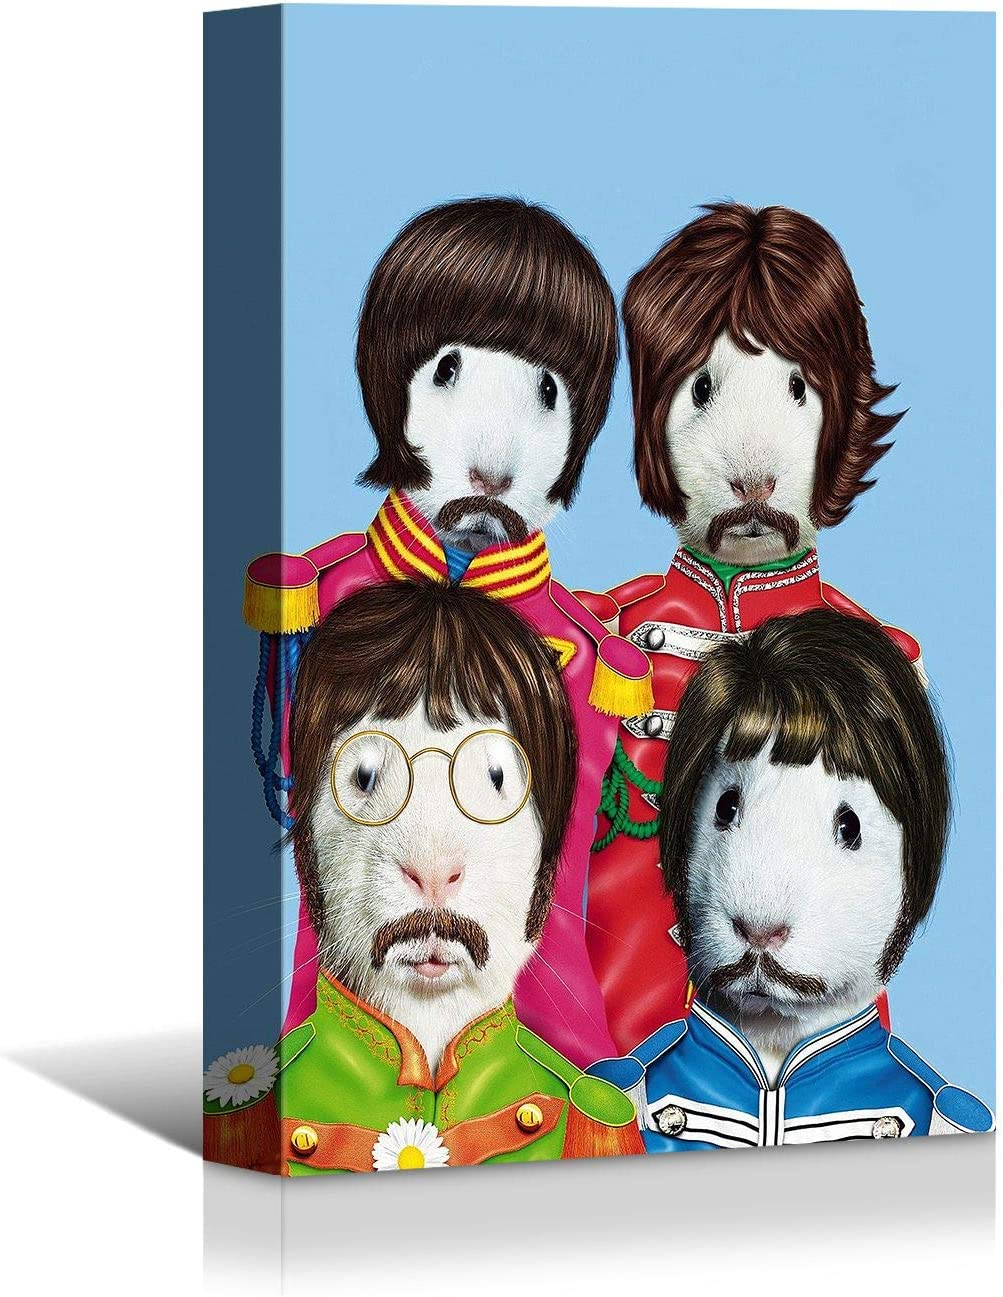 Looife Animal Canvas Wall Art, 16x24 Inch Funny Rabbit The Beatles Famous Idol Star Portrait Picture Prints Wall Decor, Modern Art Deco for Home & Nursery Decoration, Ready to Hang